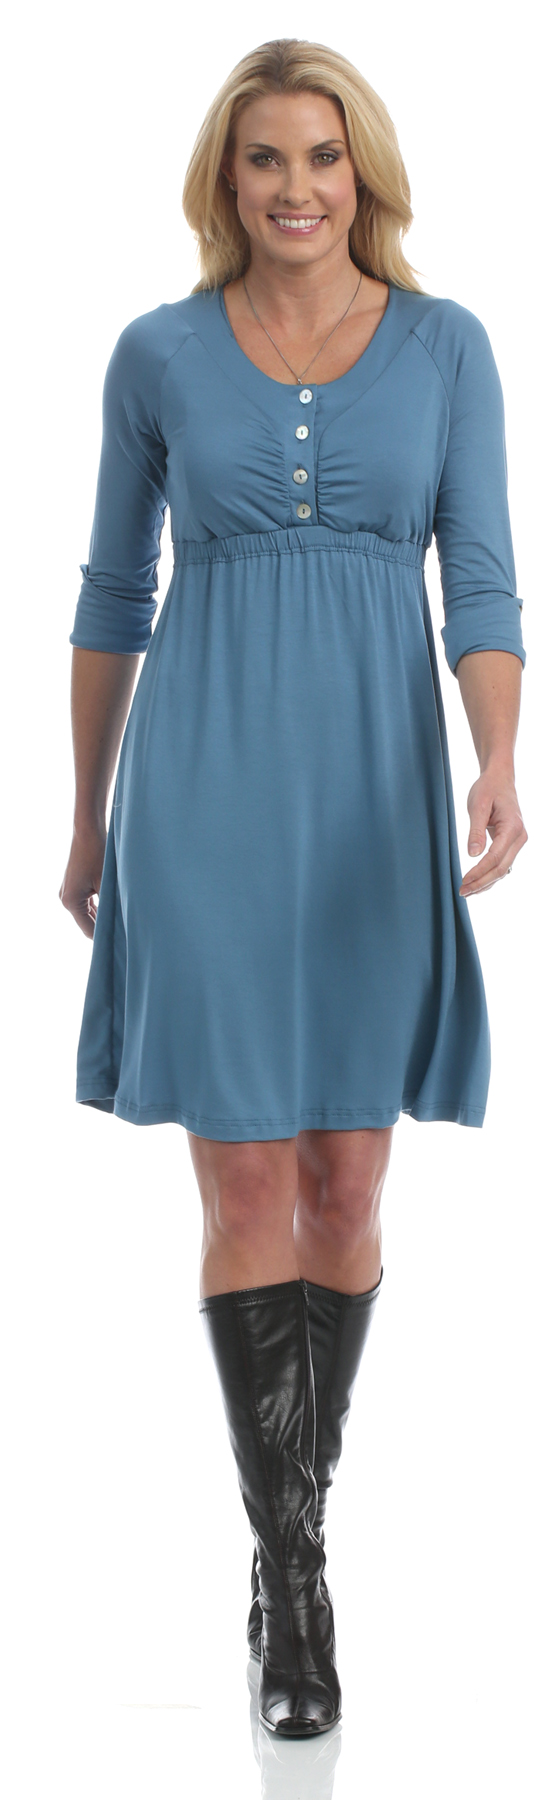 nixilu-mimi-nursing-dress-blue-dusk.jpg